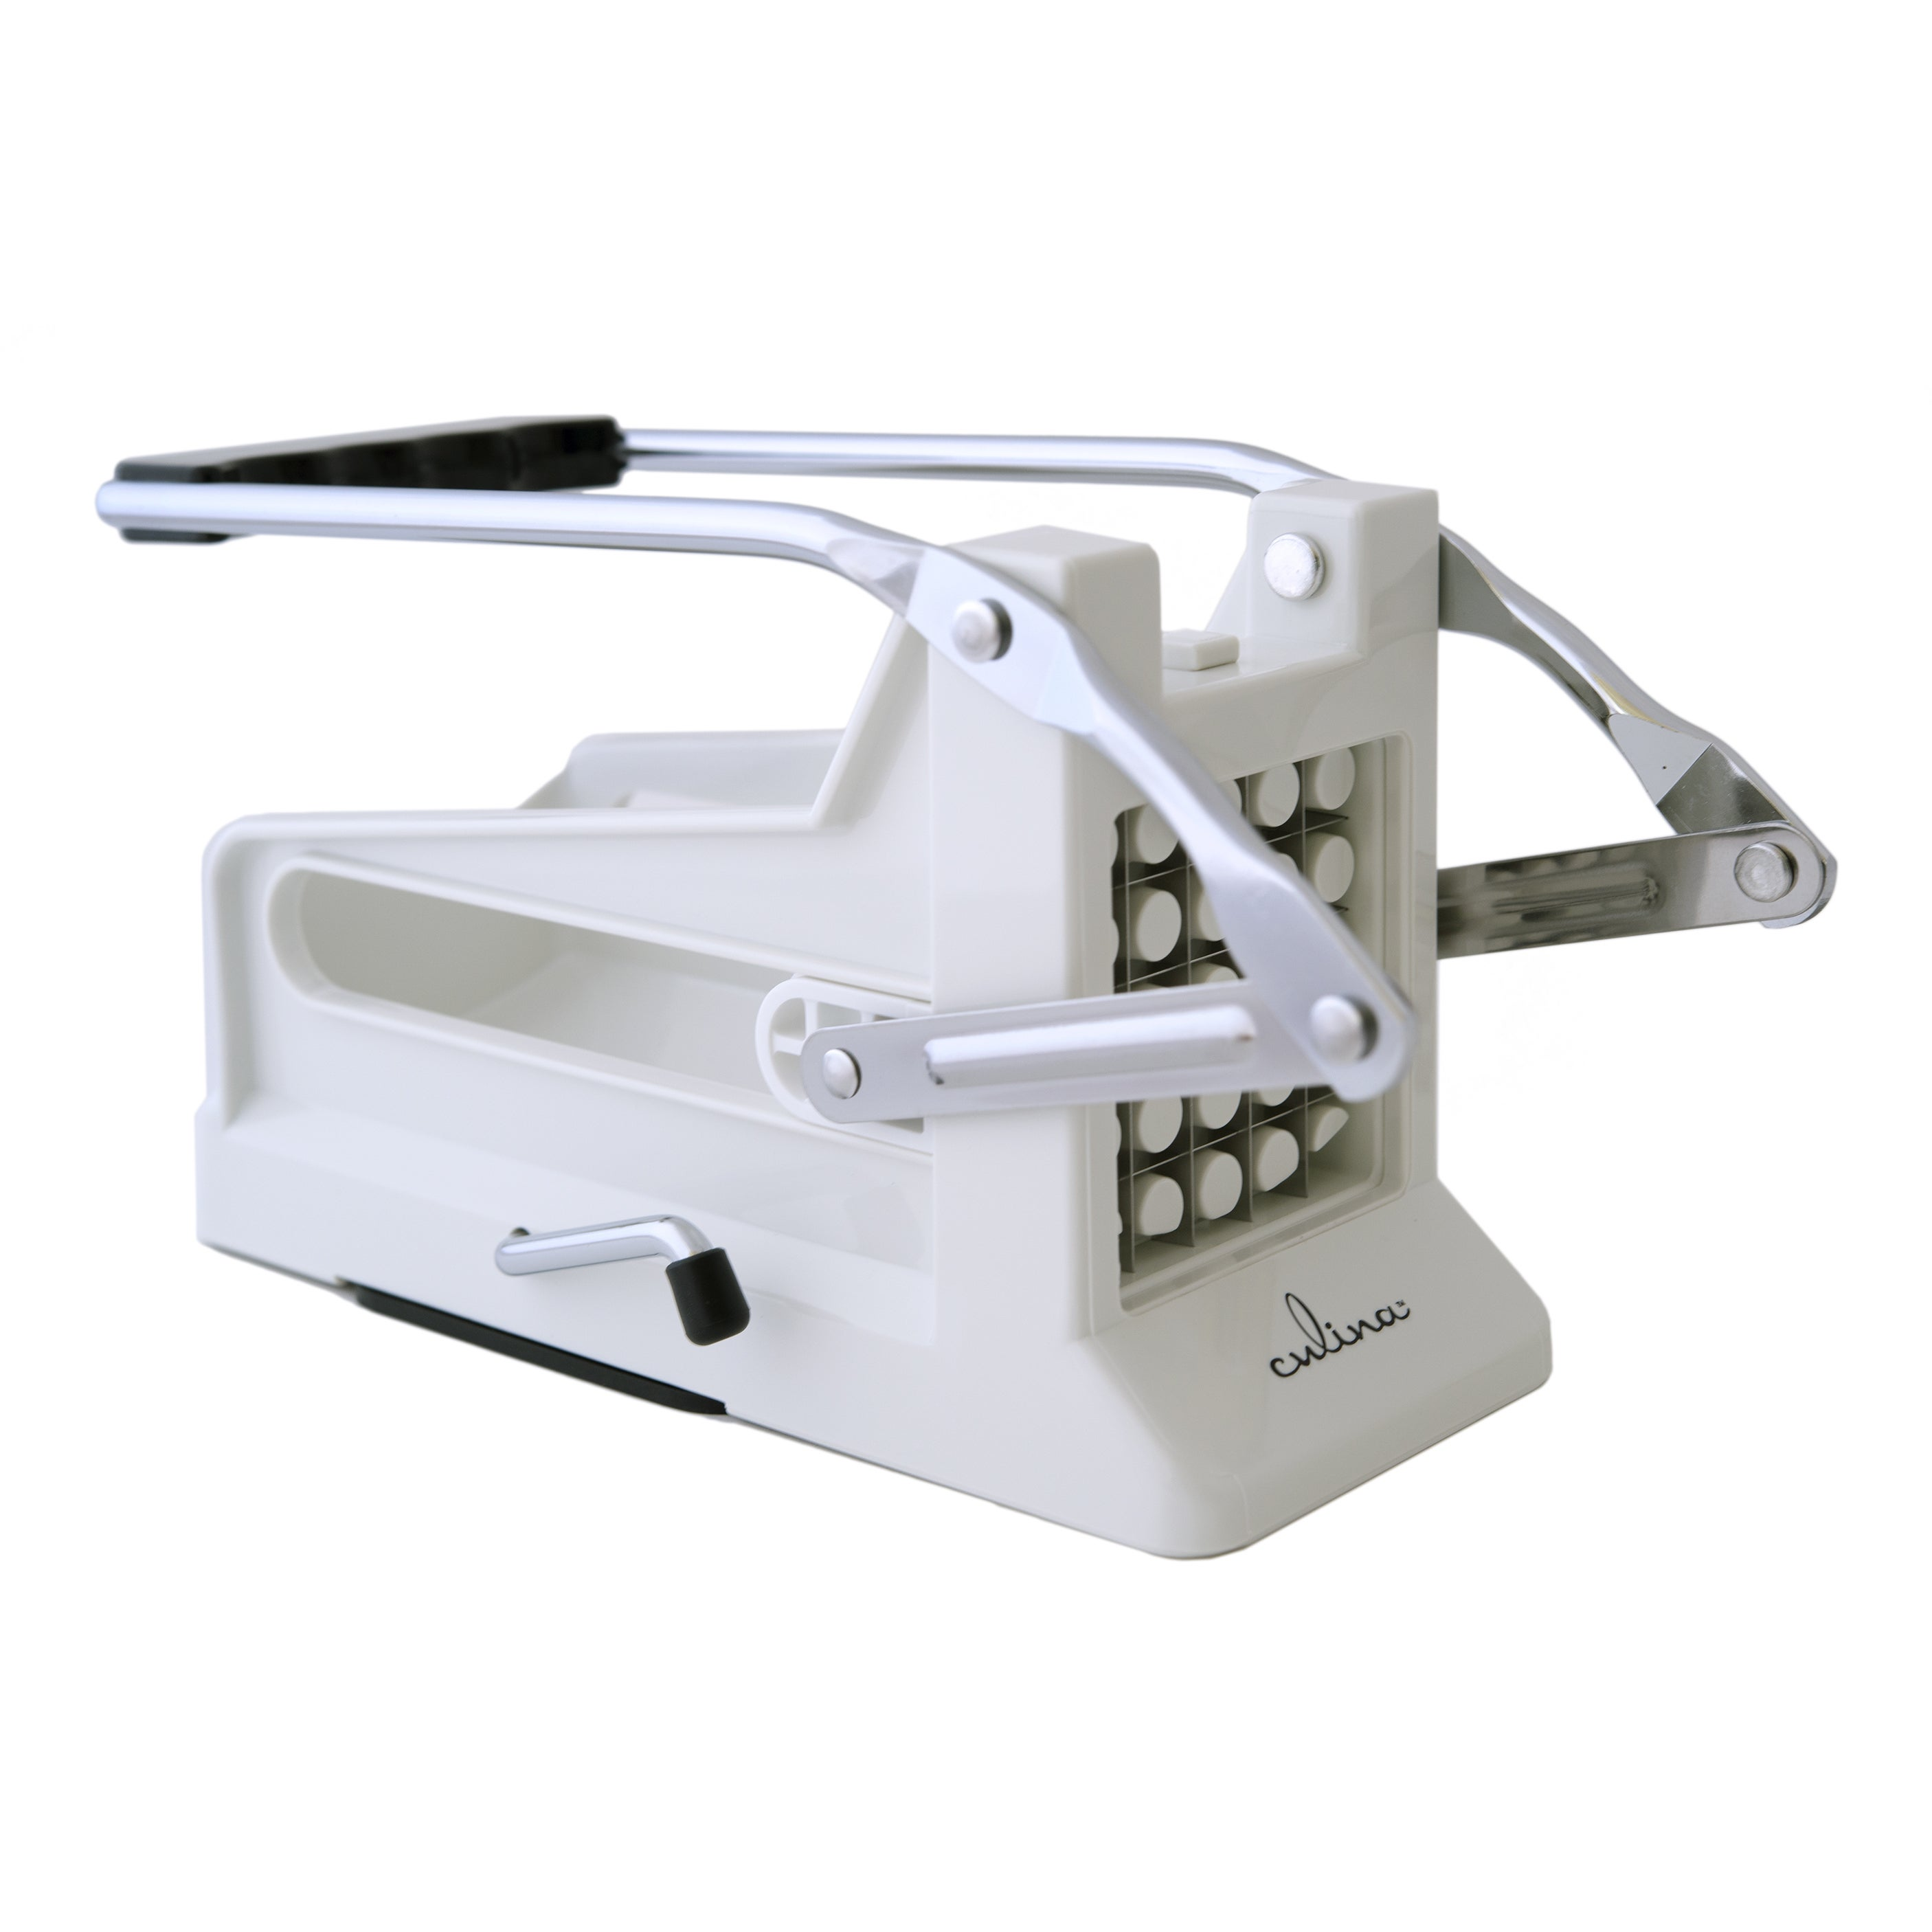 Overstock.com Culina French Fry Potato Cutter with Round Bottom